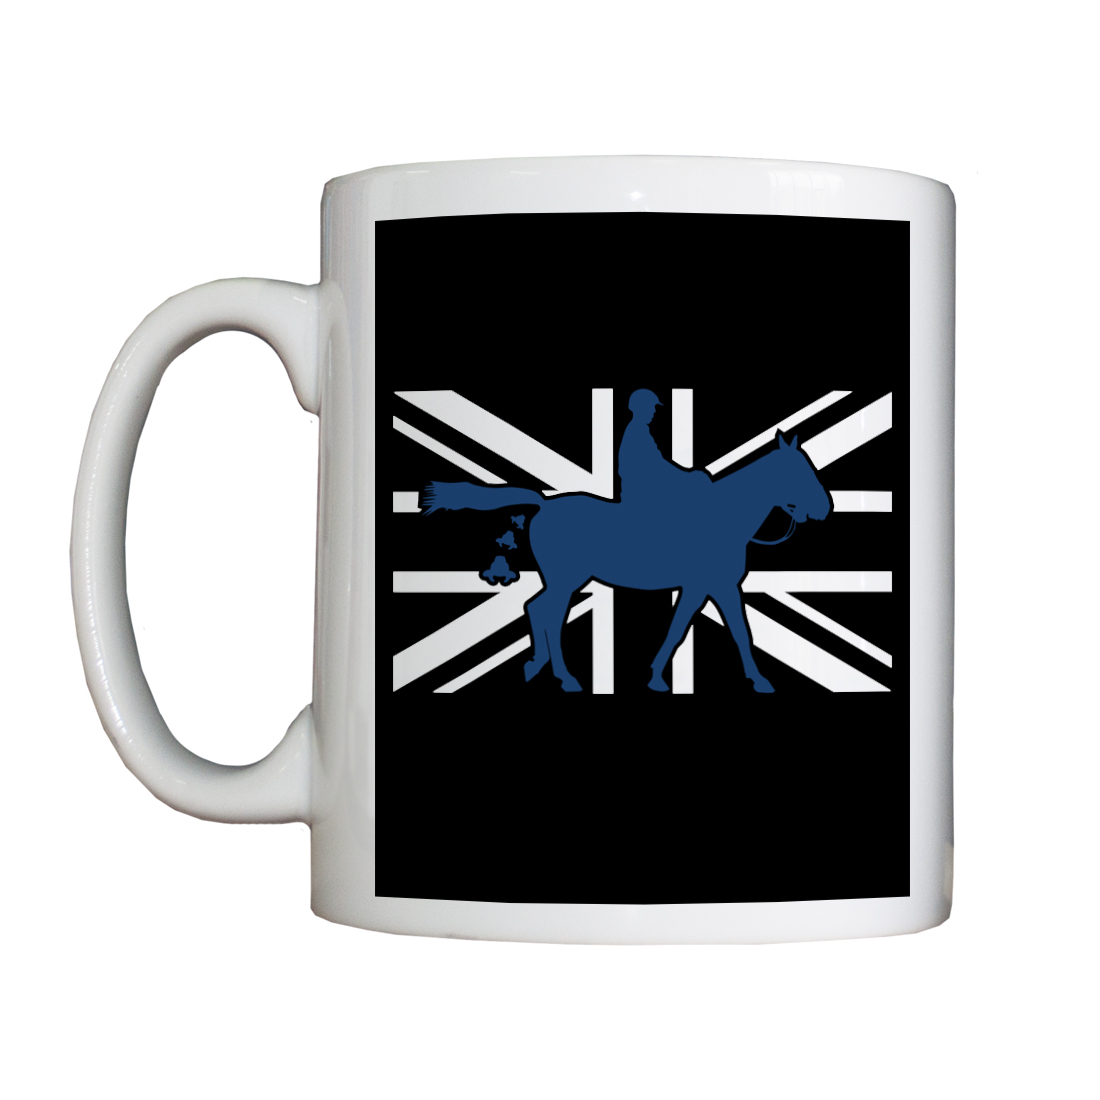 Personalised 'Mounted Division' Drinking Vessel MountedDivisionVessel